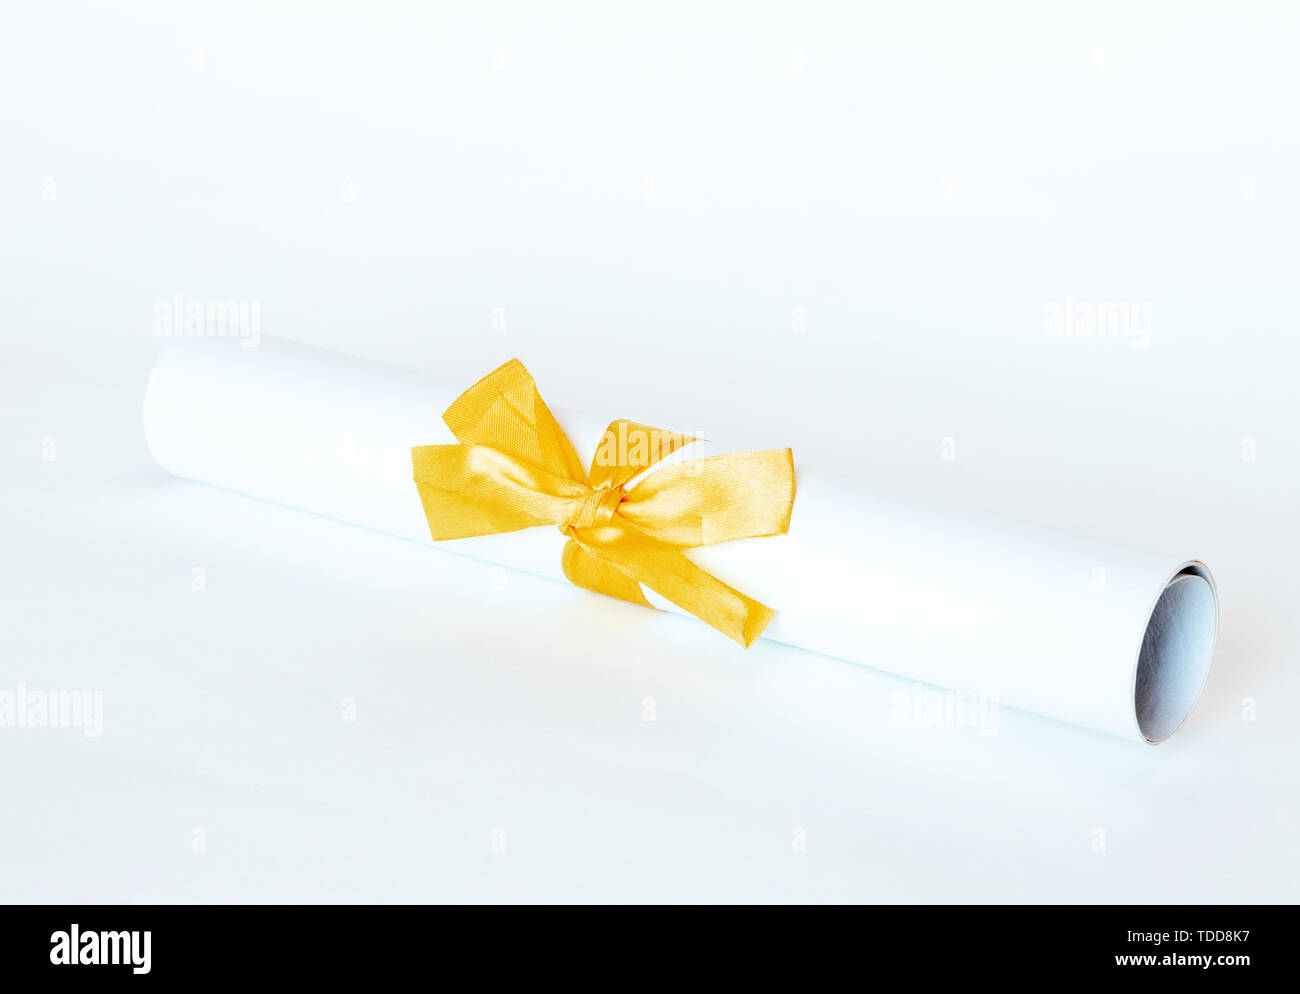 Certificate diploma with golden ribbon isolated on white background. - Stock Image